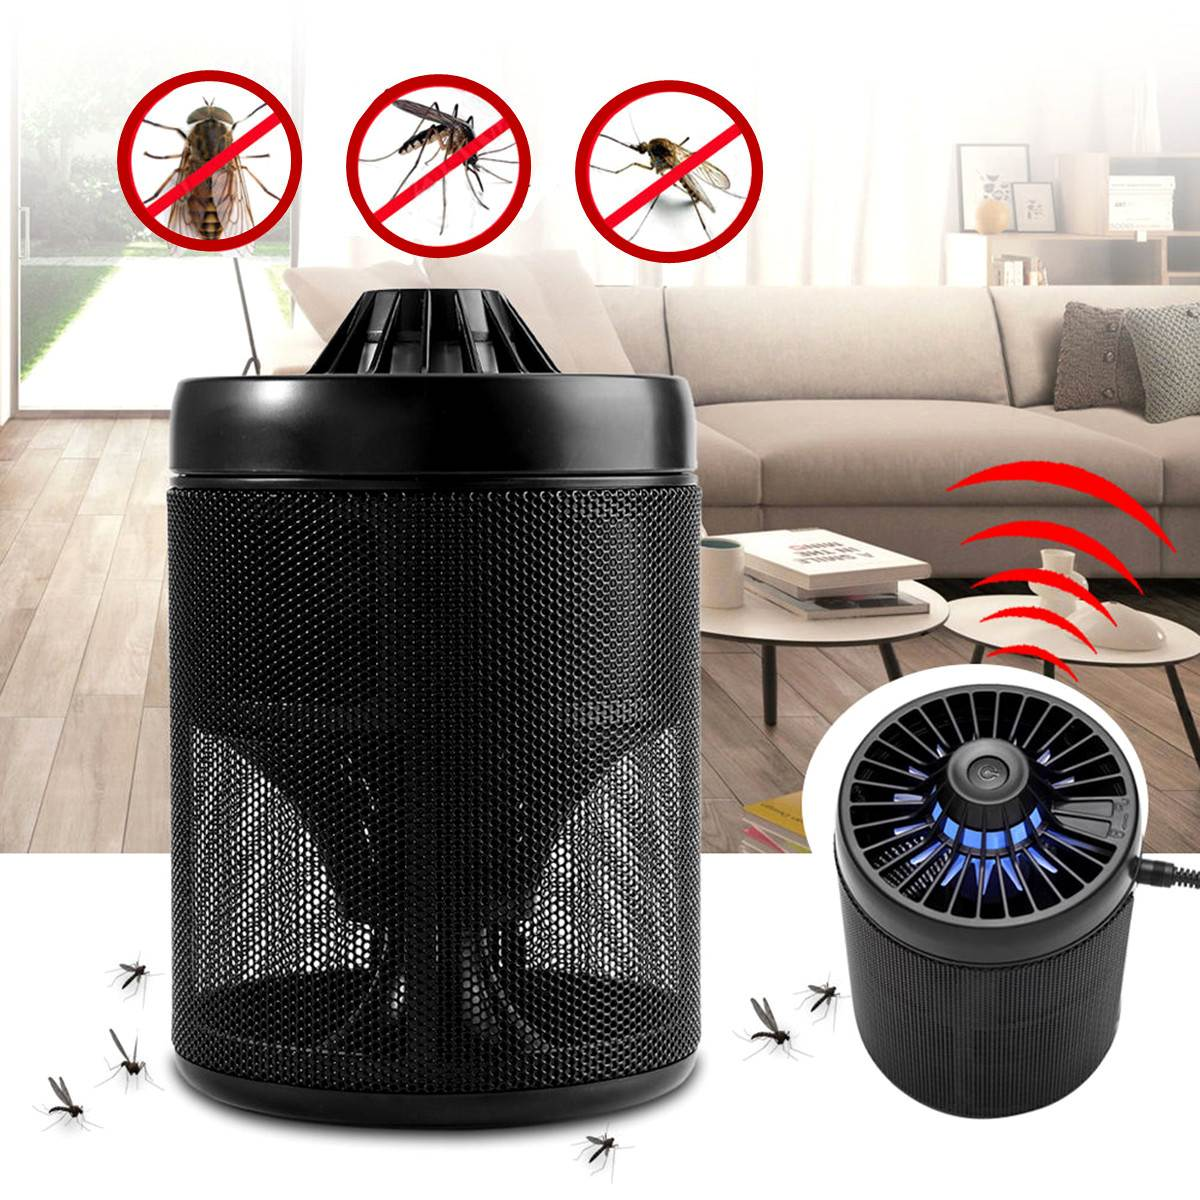 Smart UV LED USB Charge Mosquito lamp Fly Bug Insect Trap Killer Lamp Zapper Light Pest Control Lights Novelty Lighting night lighthouse shape uv mosquito control lamp pest fly bug moth killer light zapper pest control outdoor light